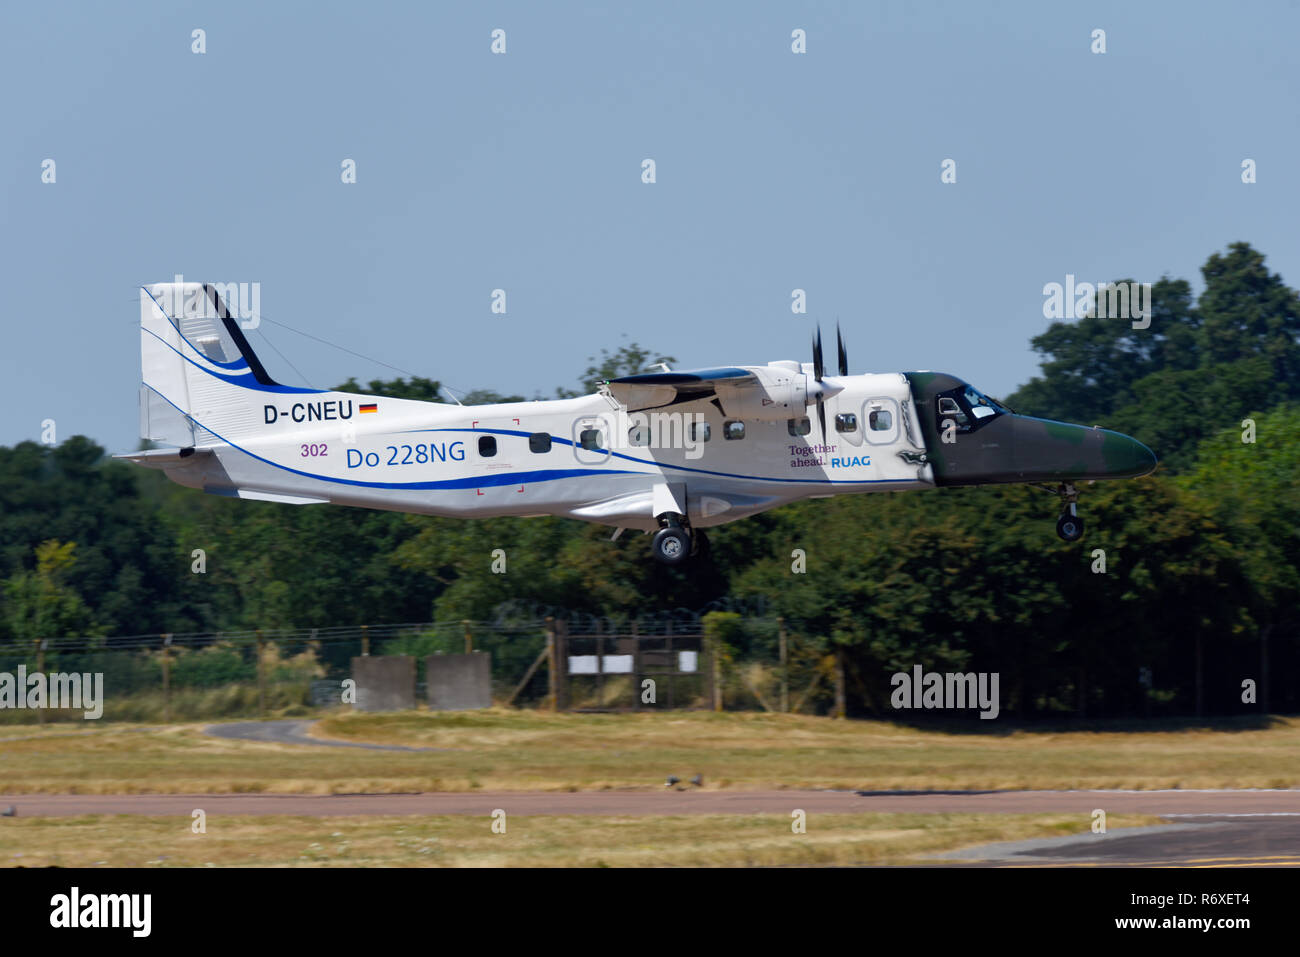 German Navy Dornier Do 228NG landing at Royal International Air Tattoo, RIAT, RAF Fairford airshow. RUAG together ahead. D-CNEU - Stock Image